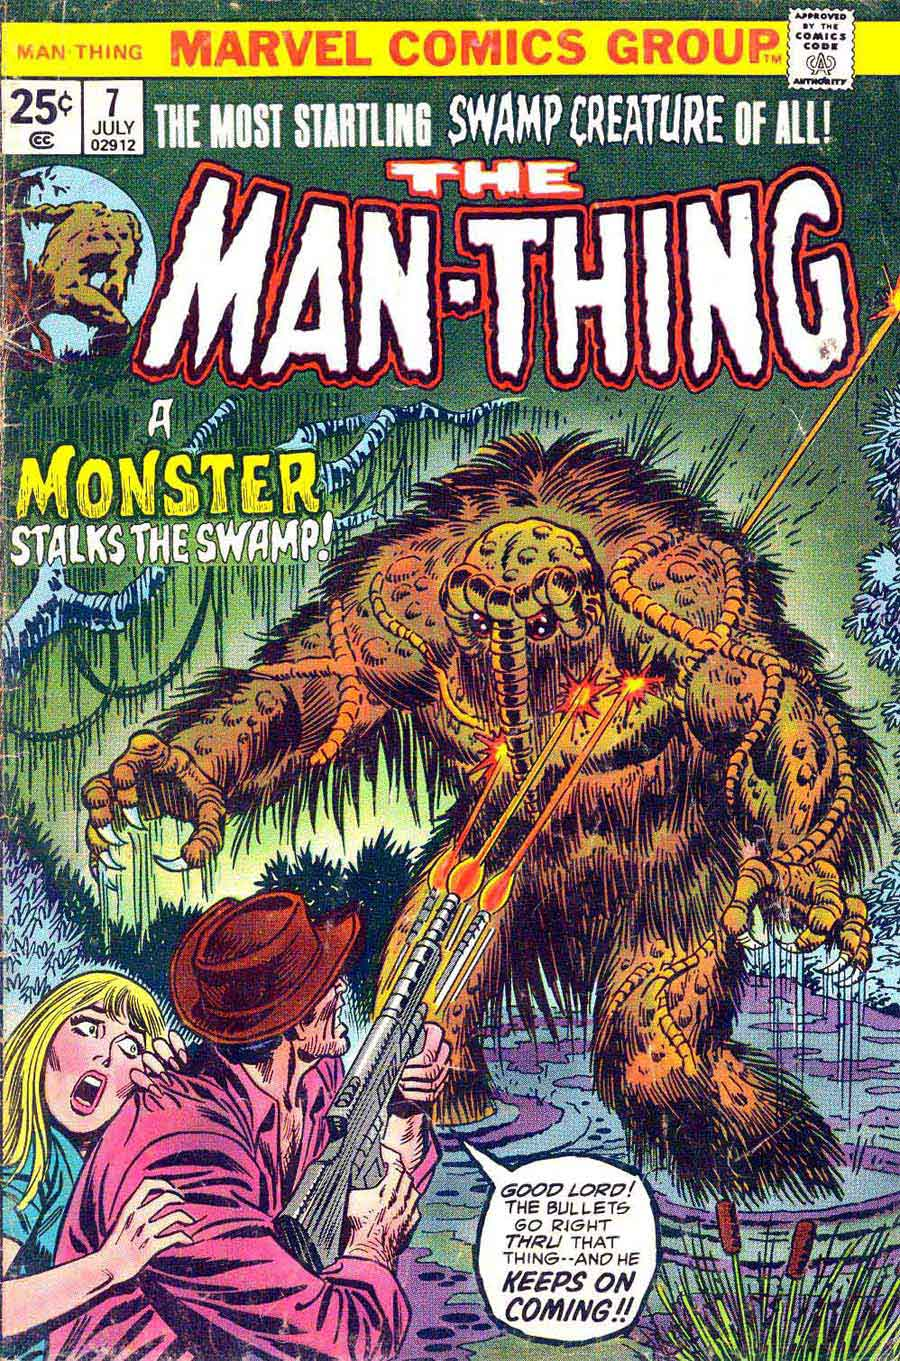 Man-Thing v1 #7 marvel 1970s bronze age comic book cover art